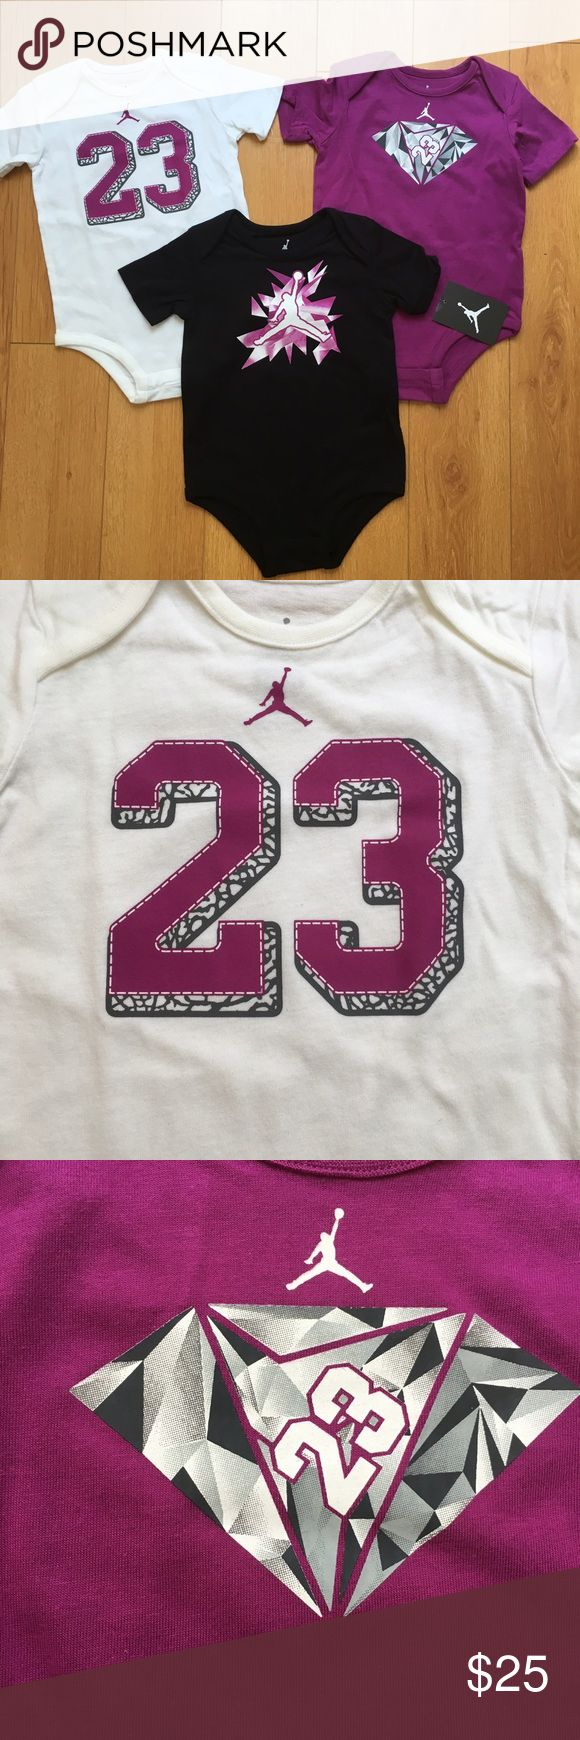 NWT Nike Jordan 3-Piece Infant Bodysuits BRAND NEW Nike Jordan 3-Piece Baby Bodysuits.  🔹Soft 100% Cotton fabric 🔹White, Purple, Black with Screen Printed designs on front 🔹Bottom snaps for easy diaper changes 🔹These are sold as a set, not individually 🔹MSRP $44  👍🏻Top Rated Seller 👍🏻Fast Shipper 🚫No Trades  Instagram: @effortless_beauty_boutique Jordan One Pieces Bodysuits